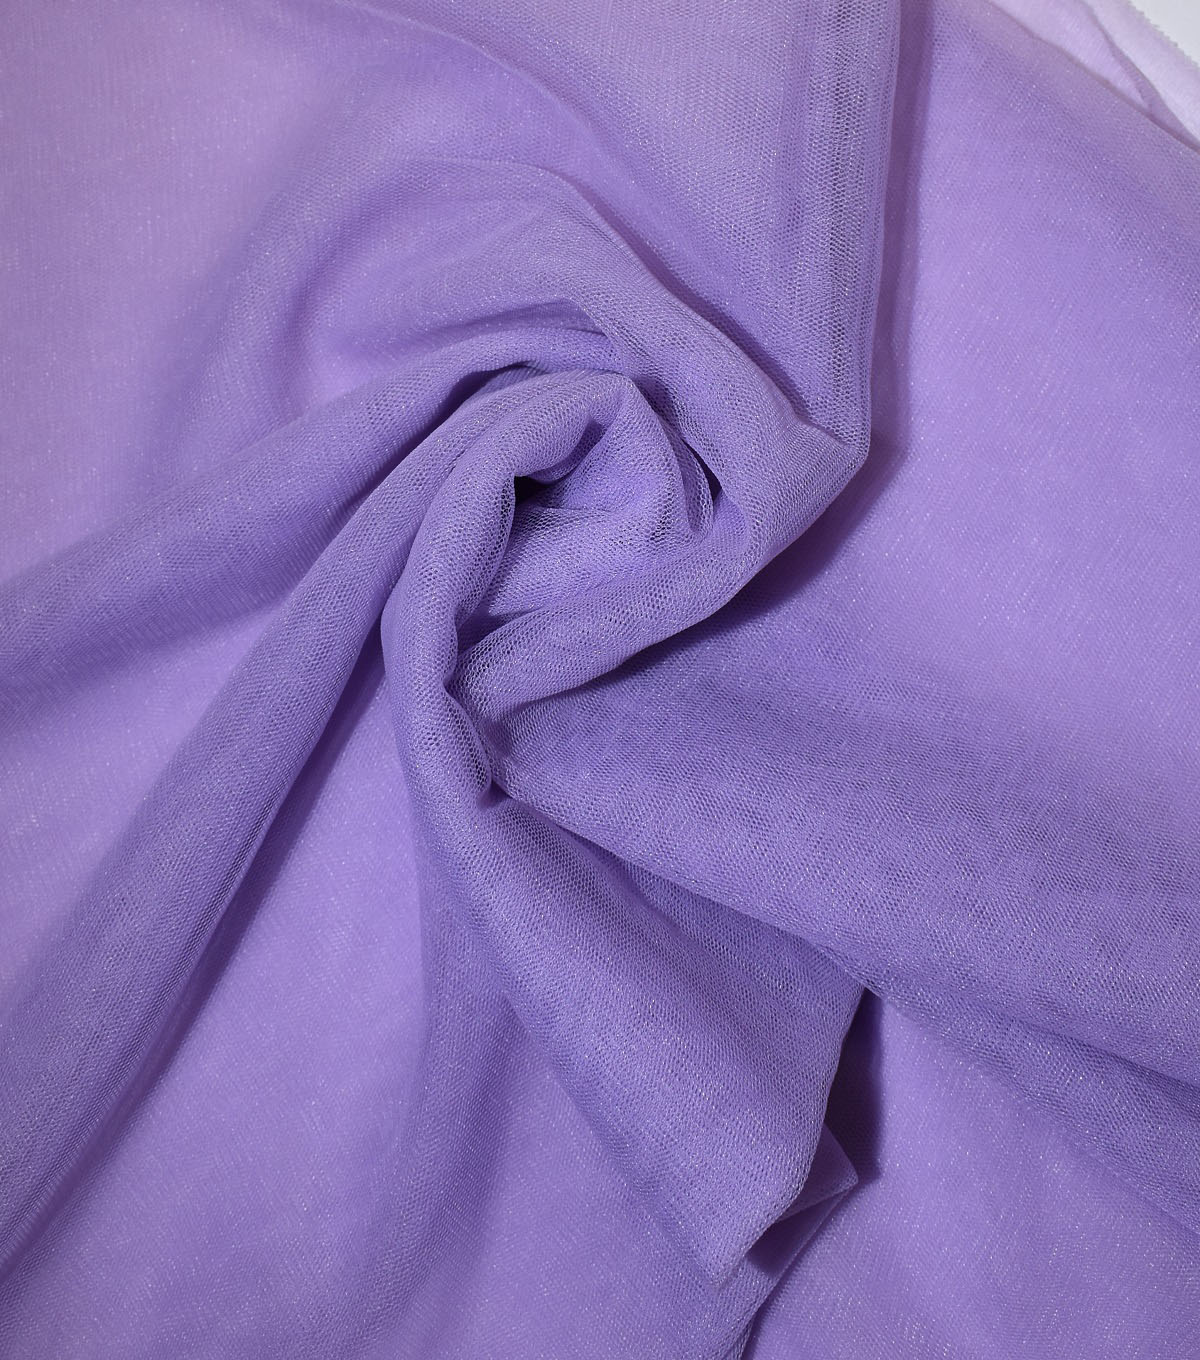 Casa Collection Solid Tulle Fabric 57\u0027\u0027, Orchid Mist